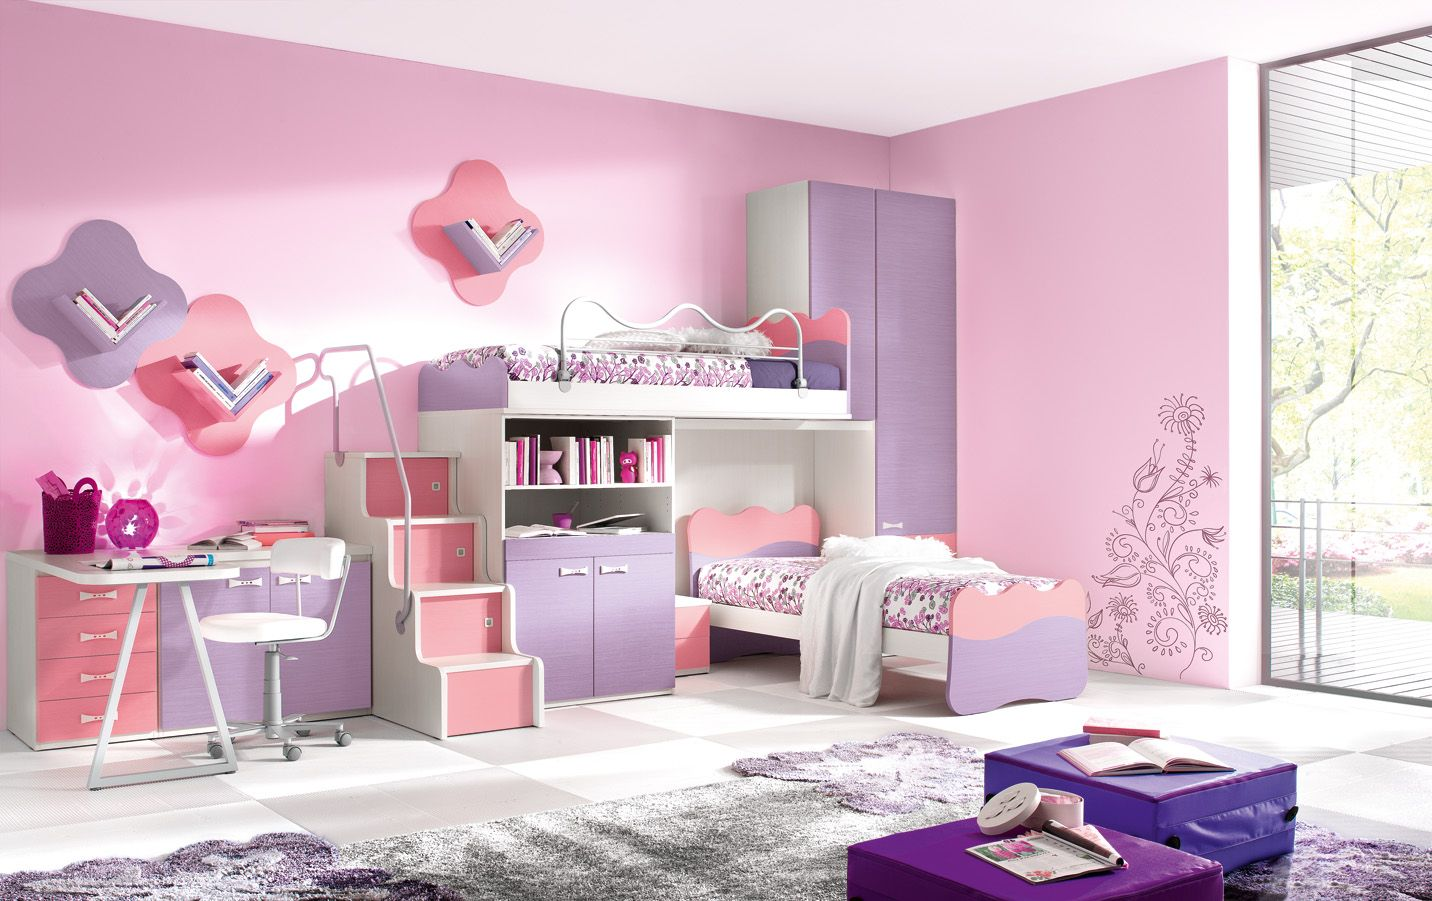 heavenly Interior likable Girls Room Design With Pink Wall Decal ...